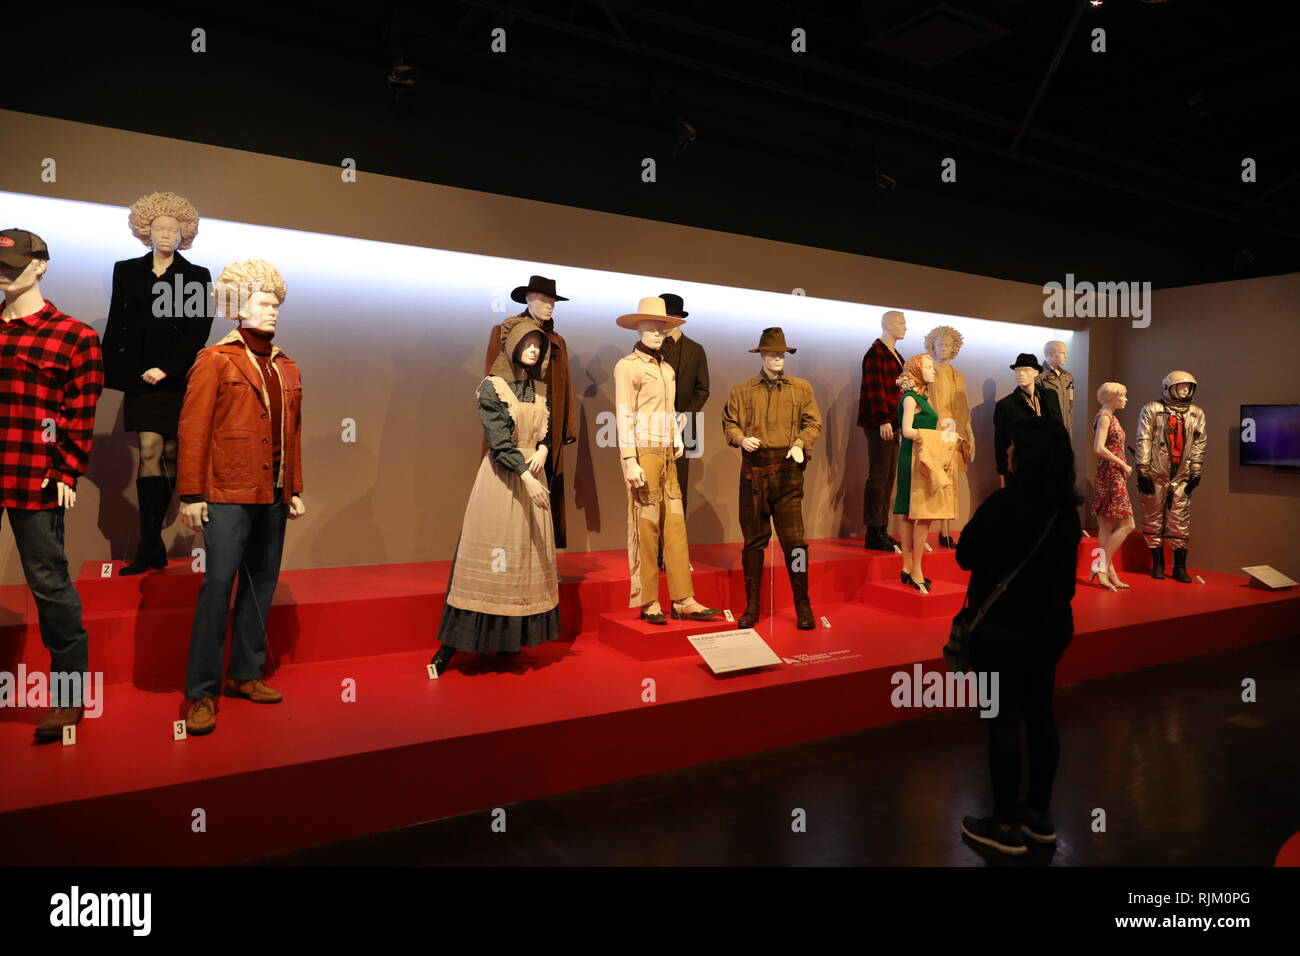 Los Angeles Ca Usa 2 5 2019 Costumes From 2019 Oscar Nominated Movies On Display At Fidm Fashion Institute Of Design Merchandising Museum Stock Photo Alamy